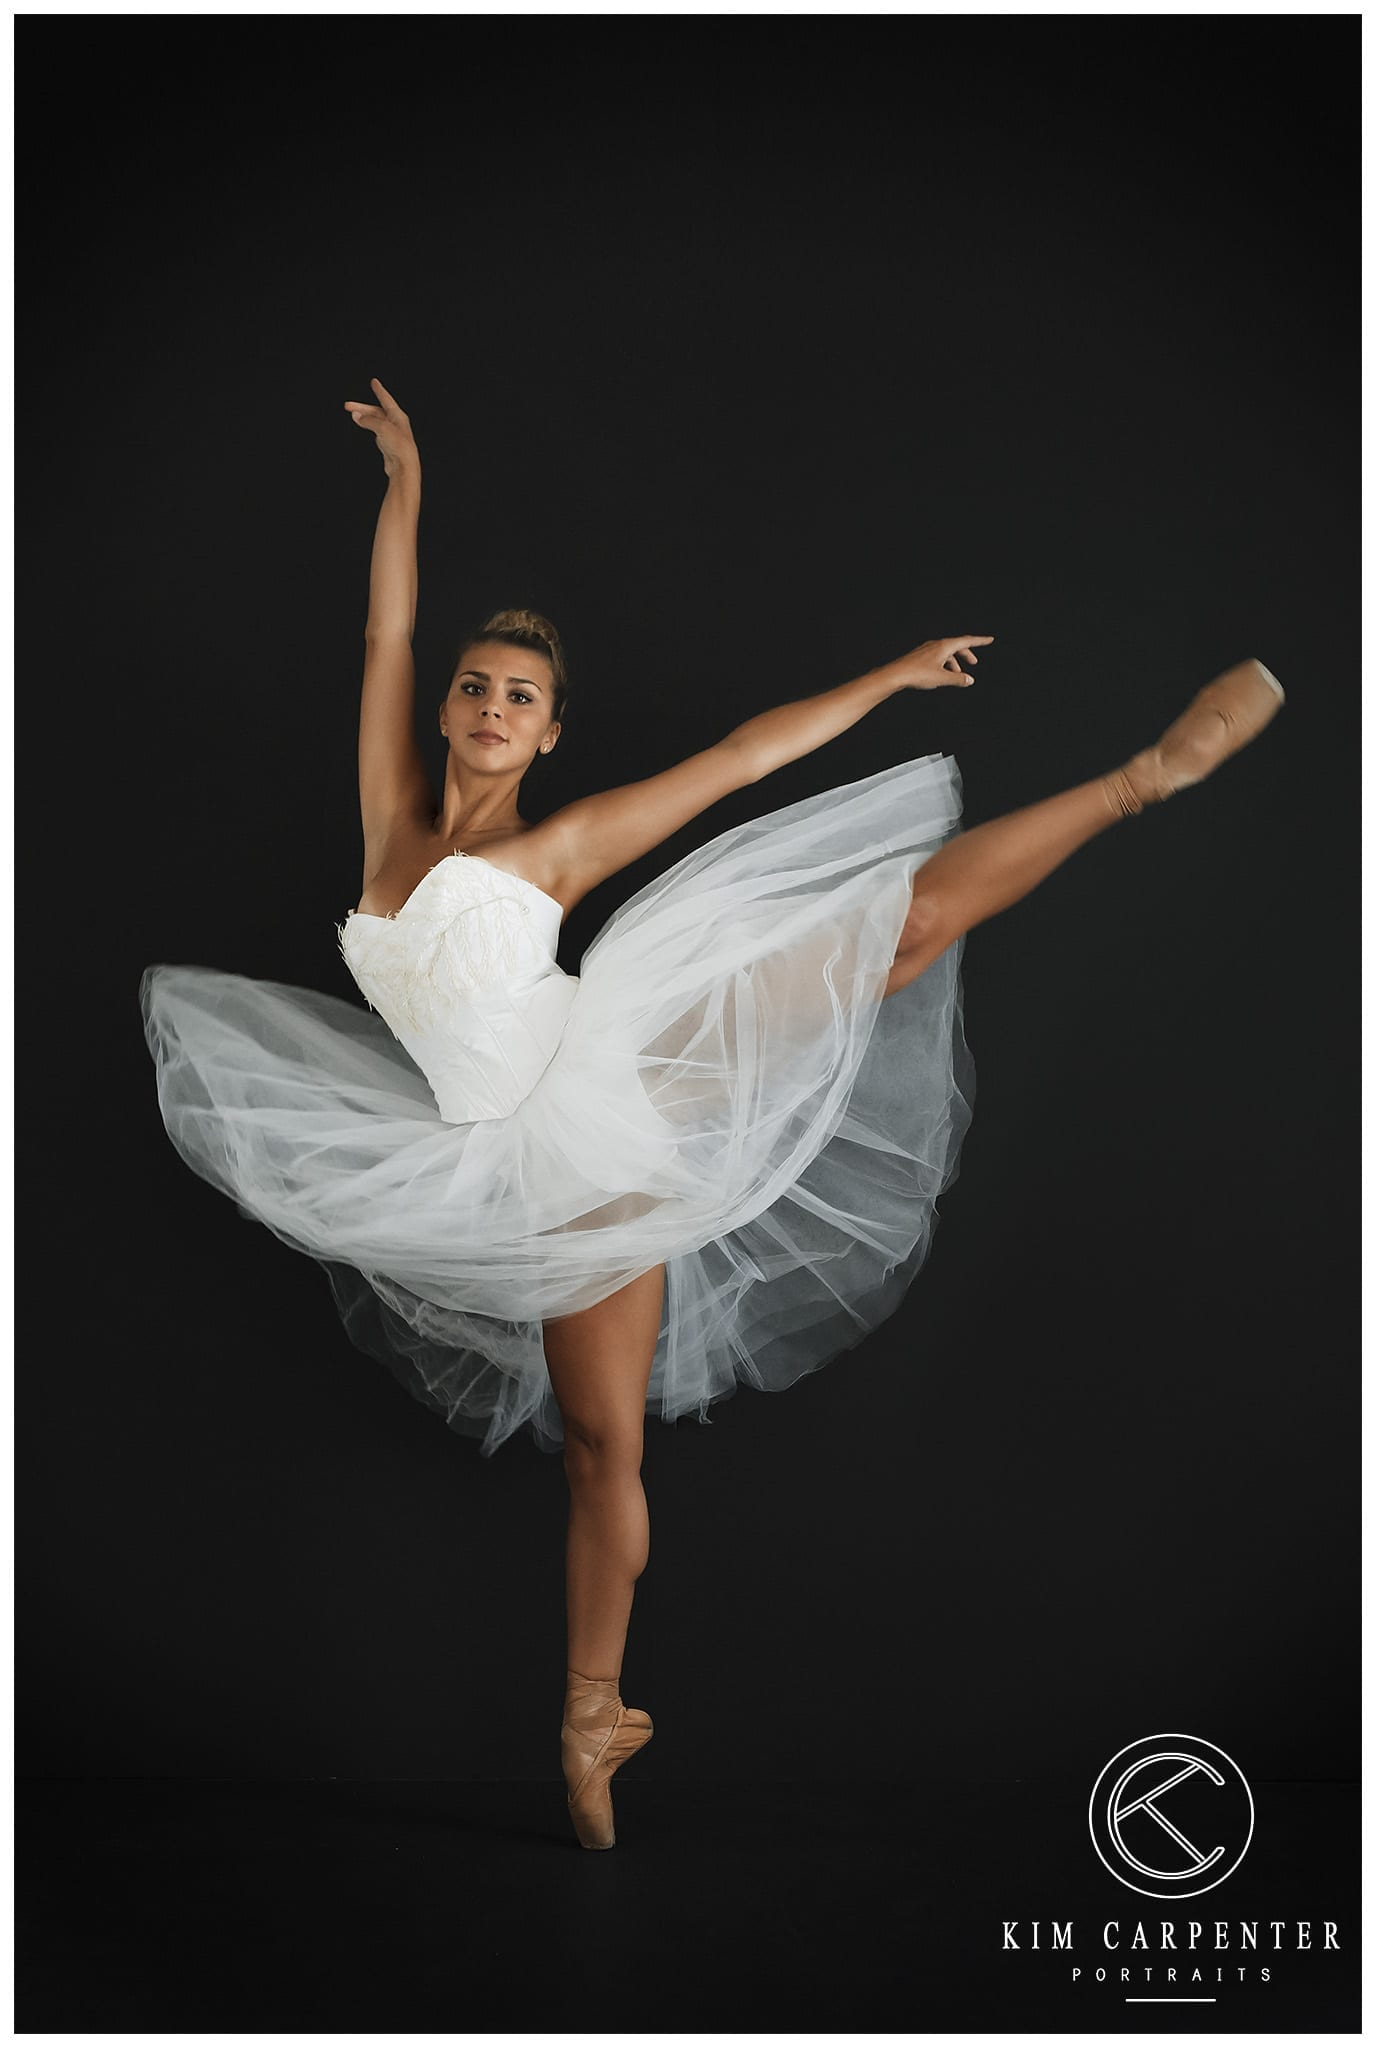 A black background with a dancer dressed in white with one leg high.